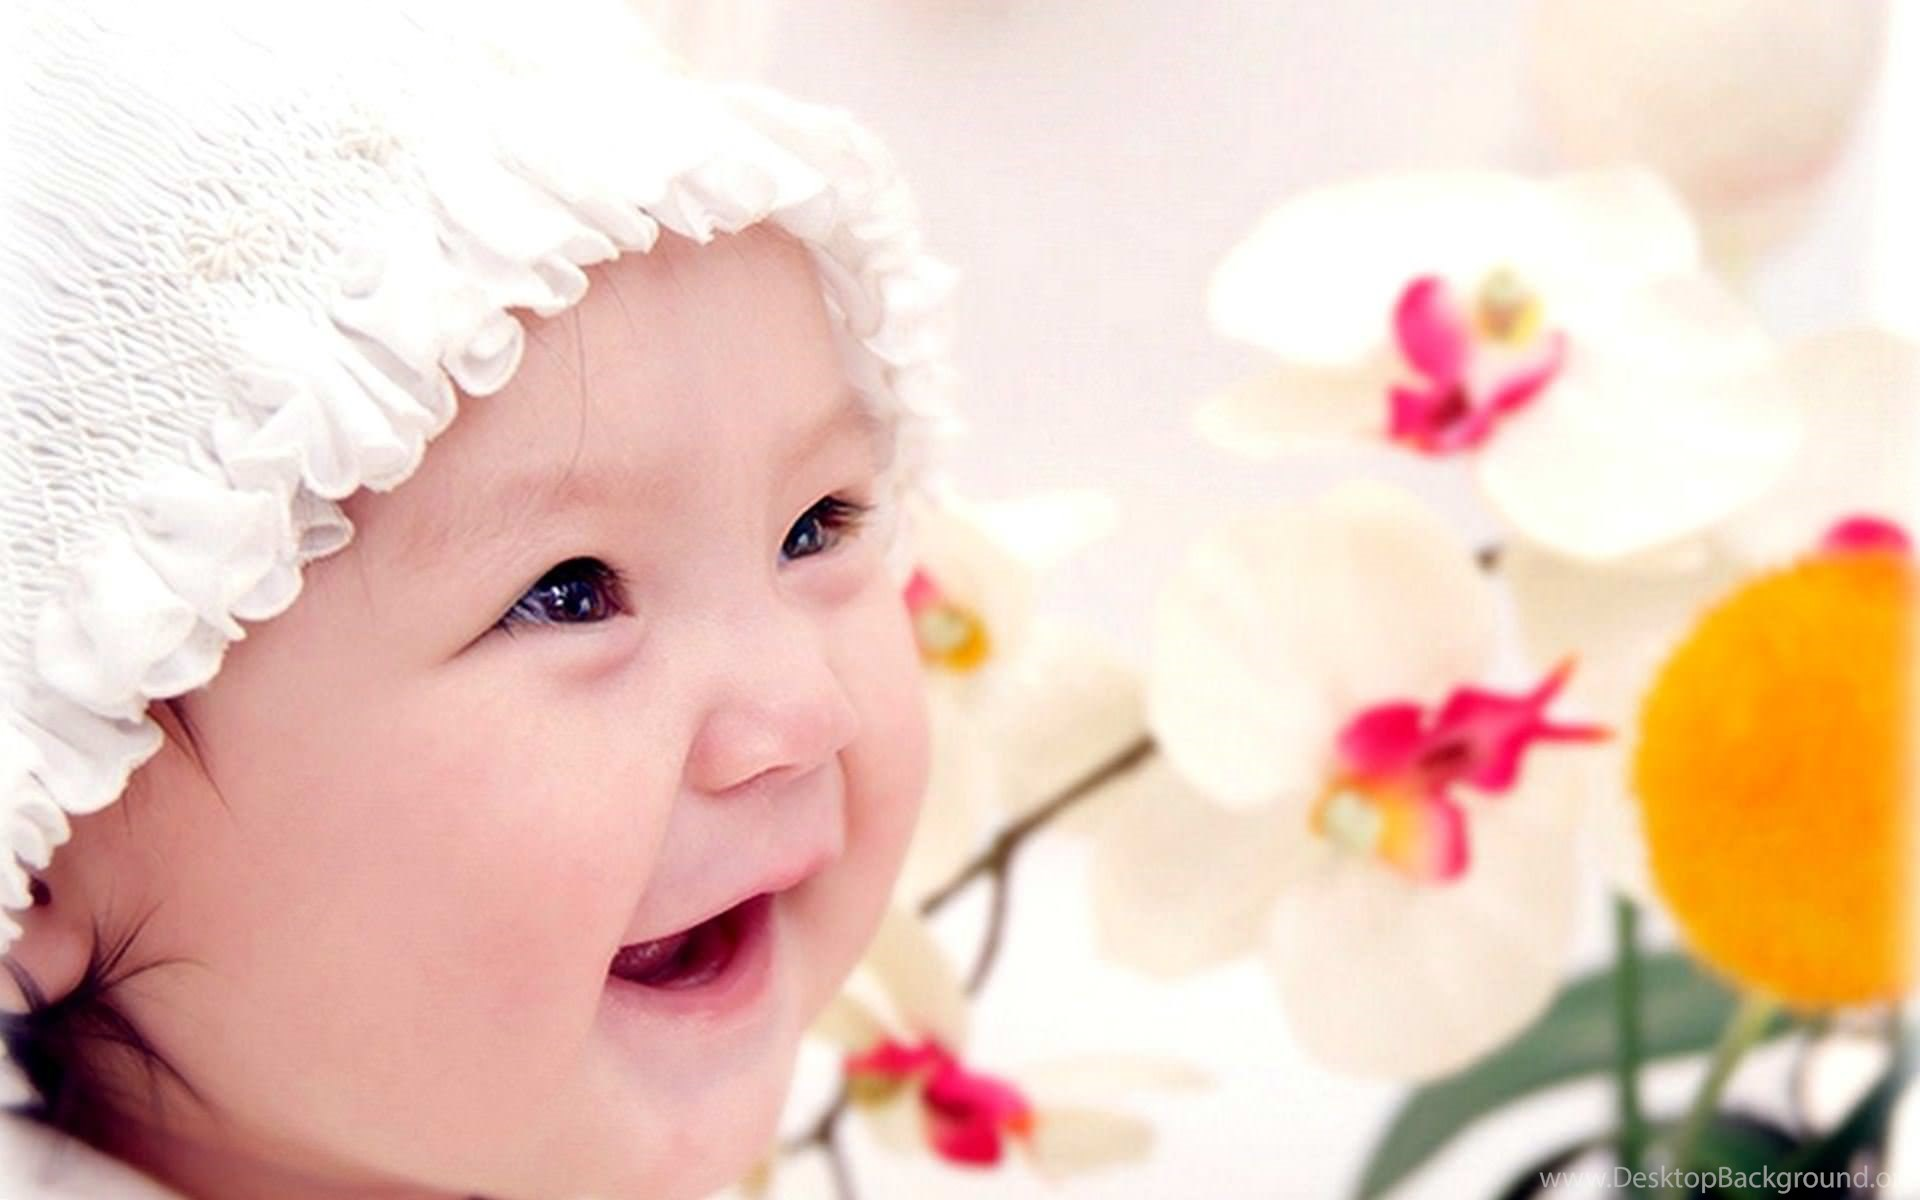 21+ cute baby wallpapers, backgrounds, kids, children, images